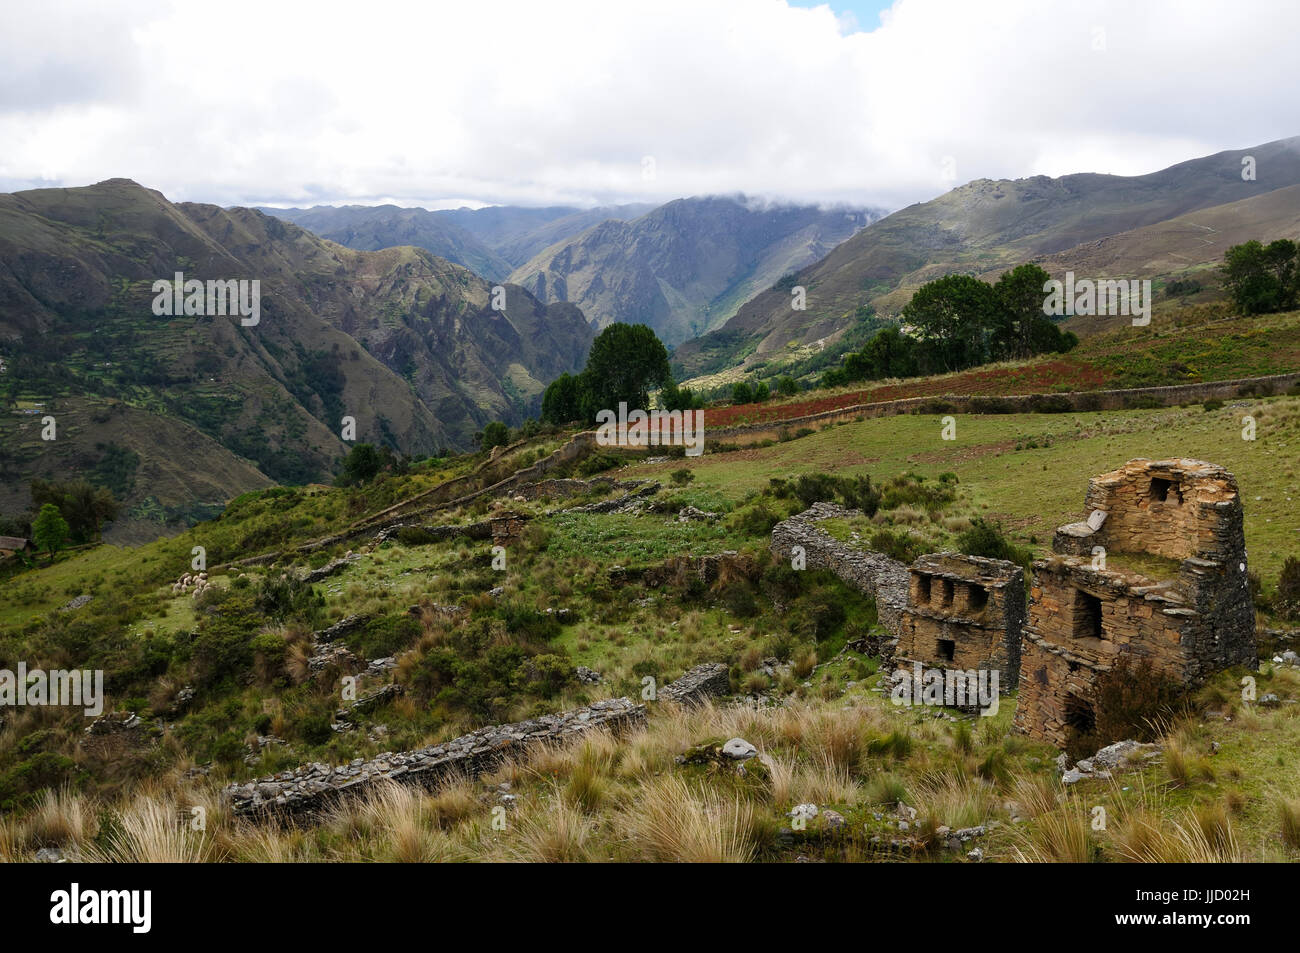 Peru, Piruro ruins near Tantamayo. Tantamayo was capital of the preColumbian Yarowilca culture, one of the olest - Stock Image